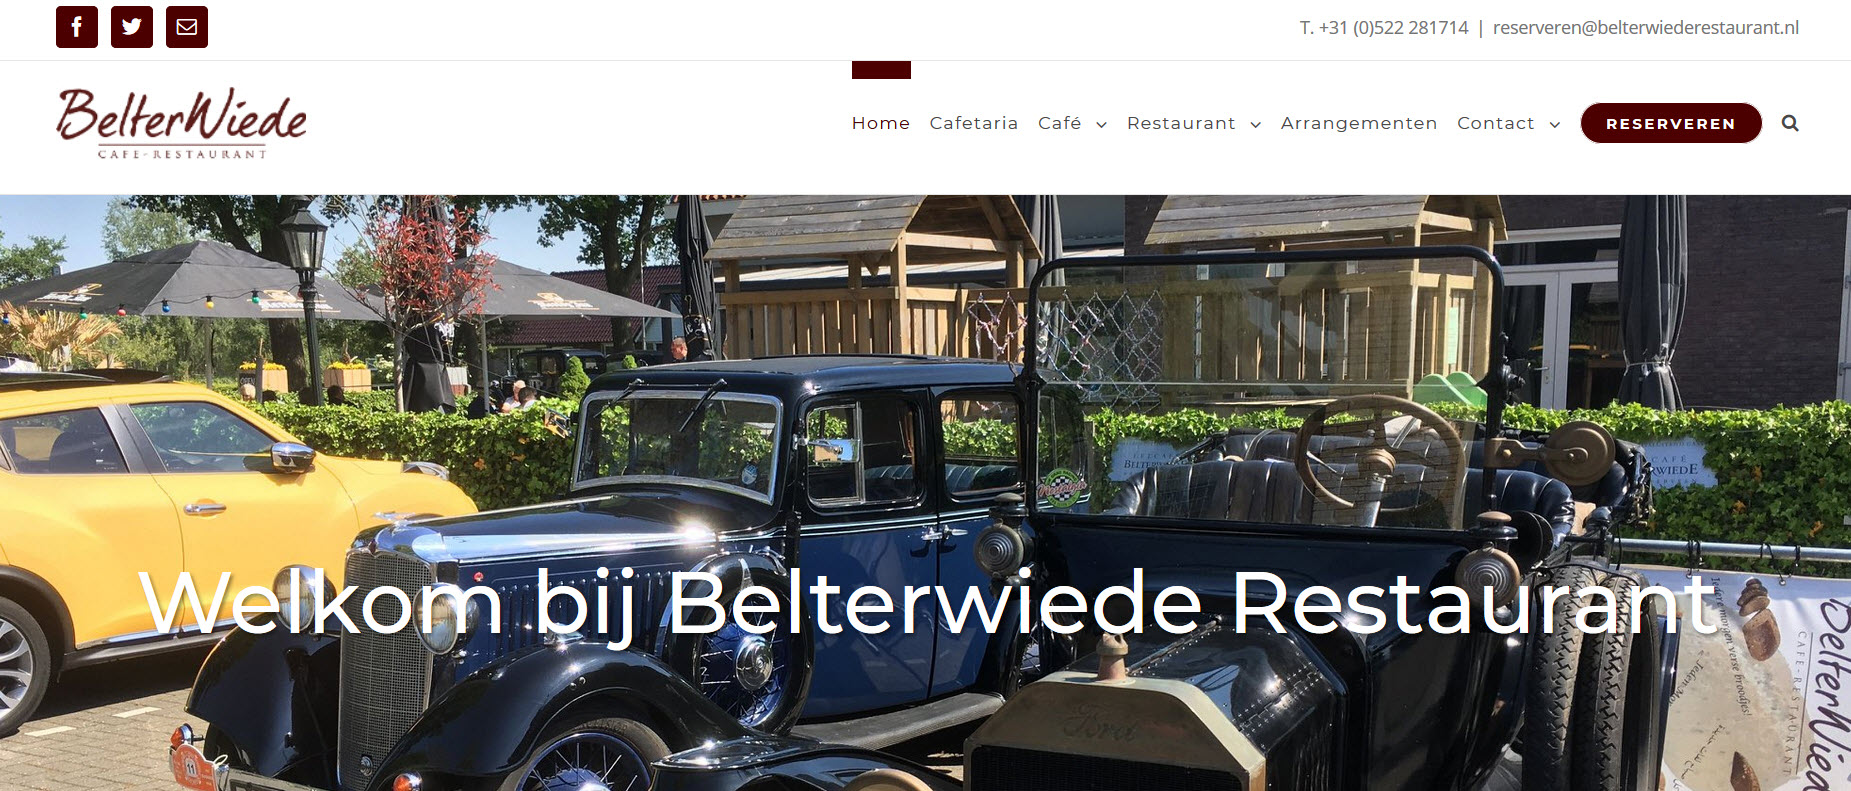 Belterwiede Restaurant - Wordpress Website